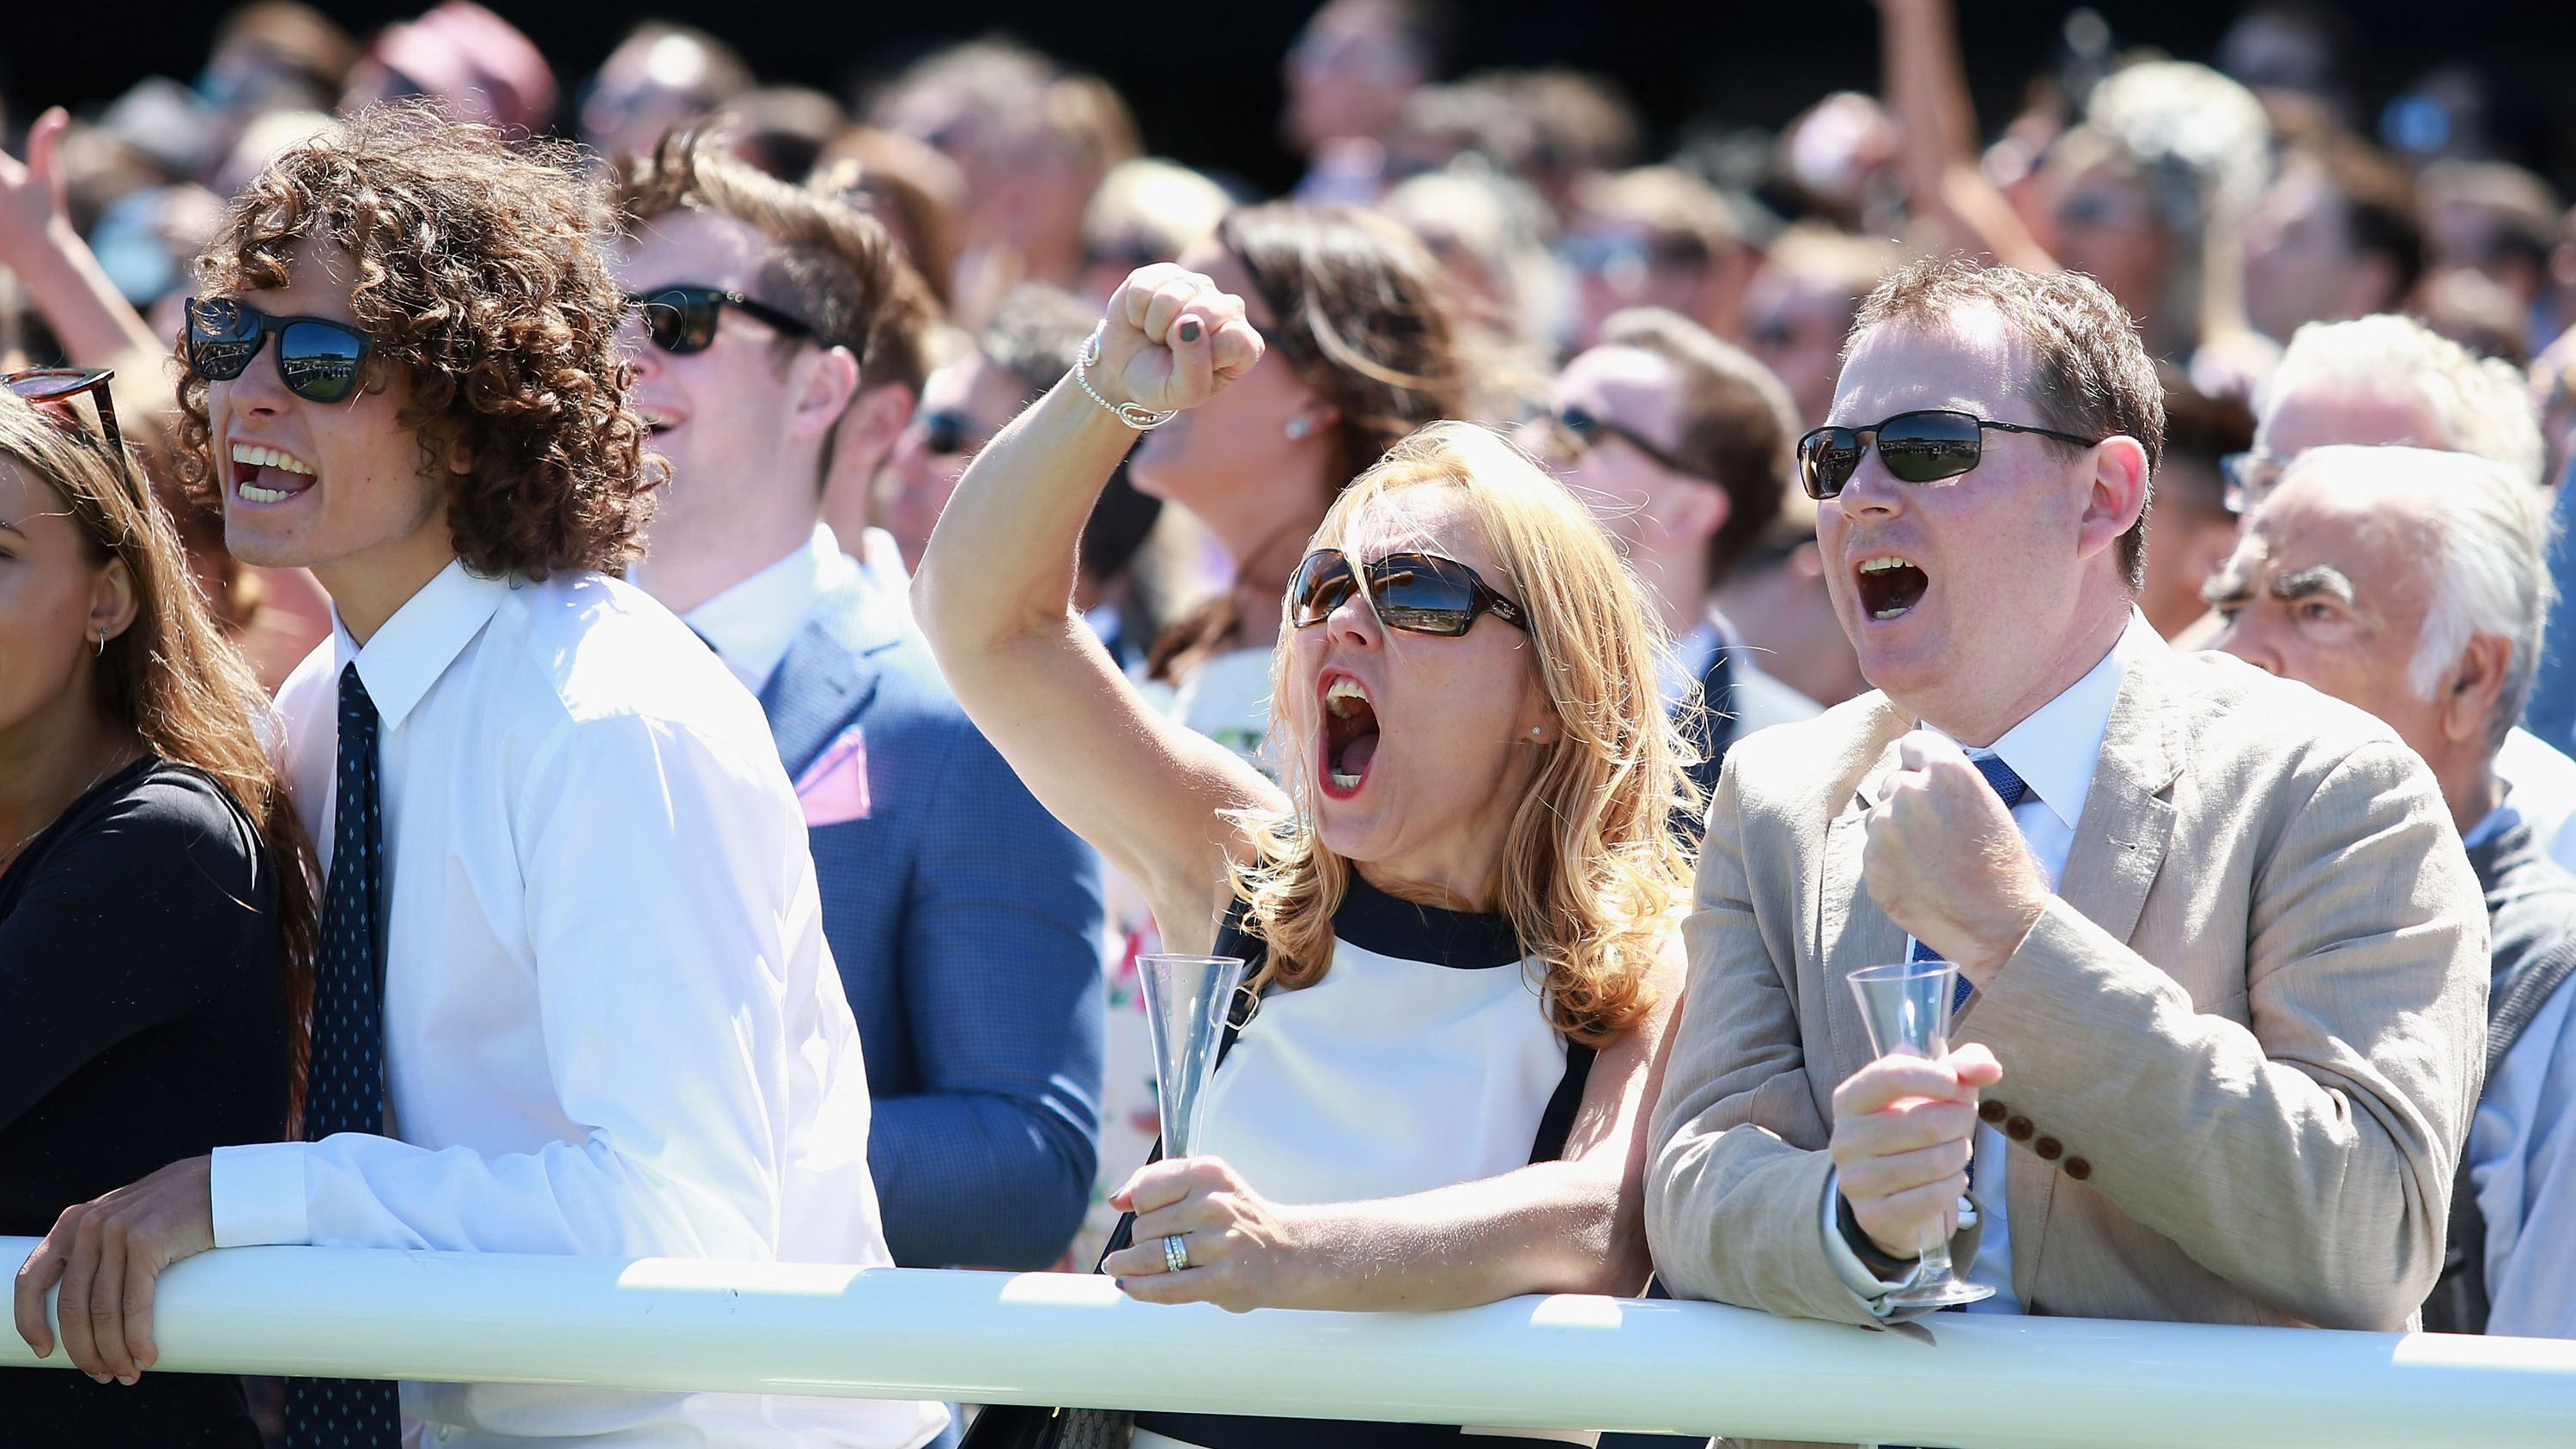 Melbourne Cup racegoers cheer home their picks.